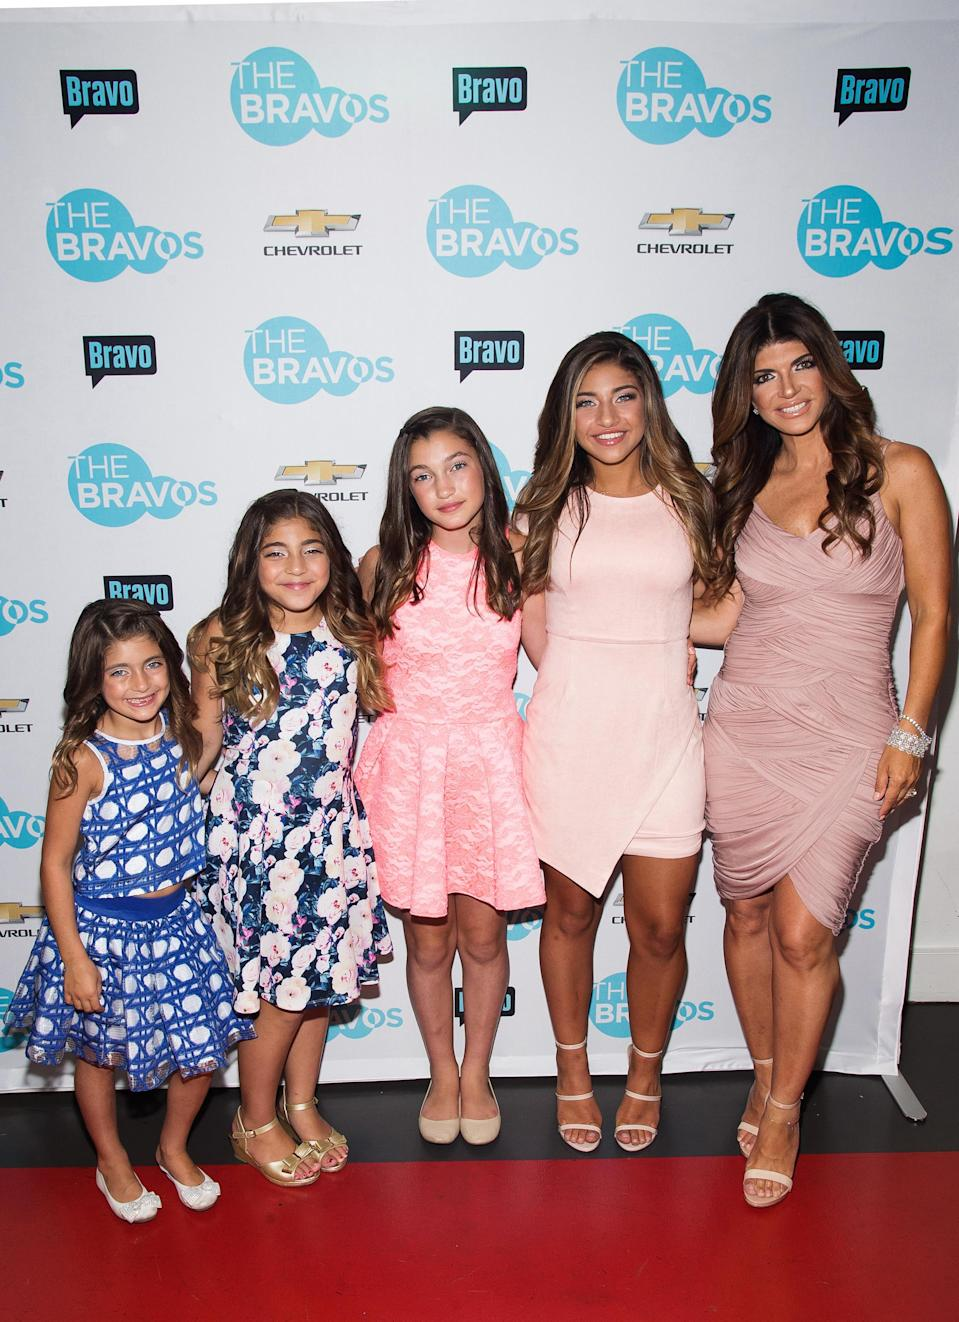 Teresa Giudice is catching heat for her daughters' deep tans. (Photo: Getty Images)